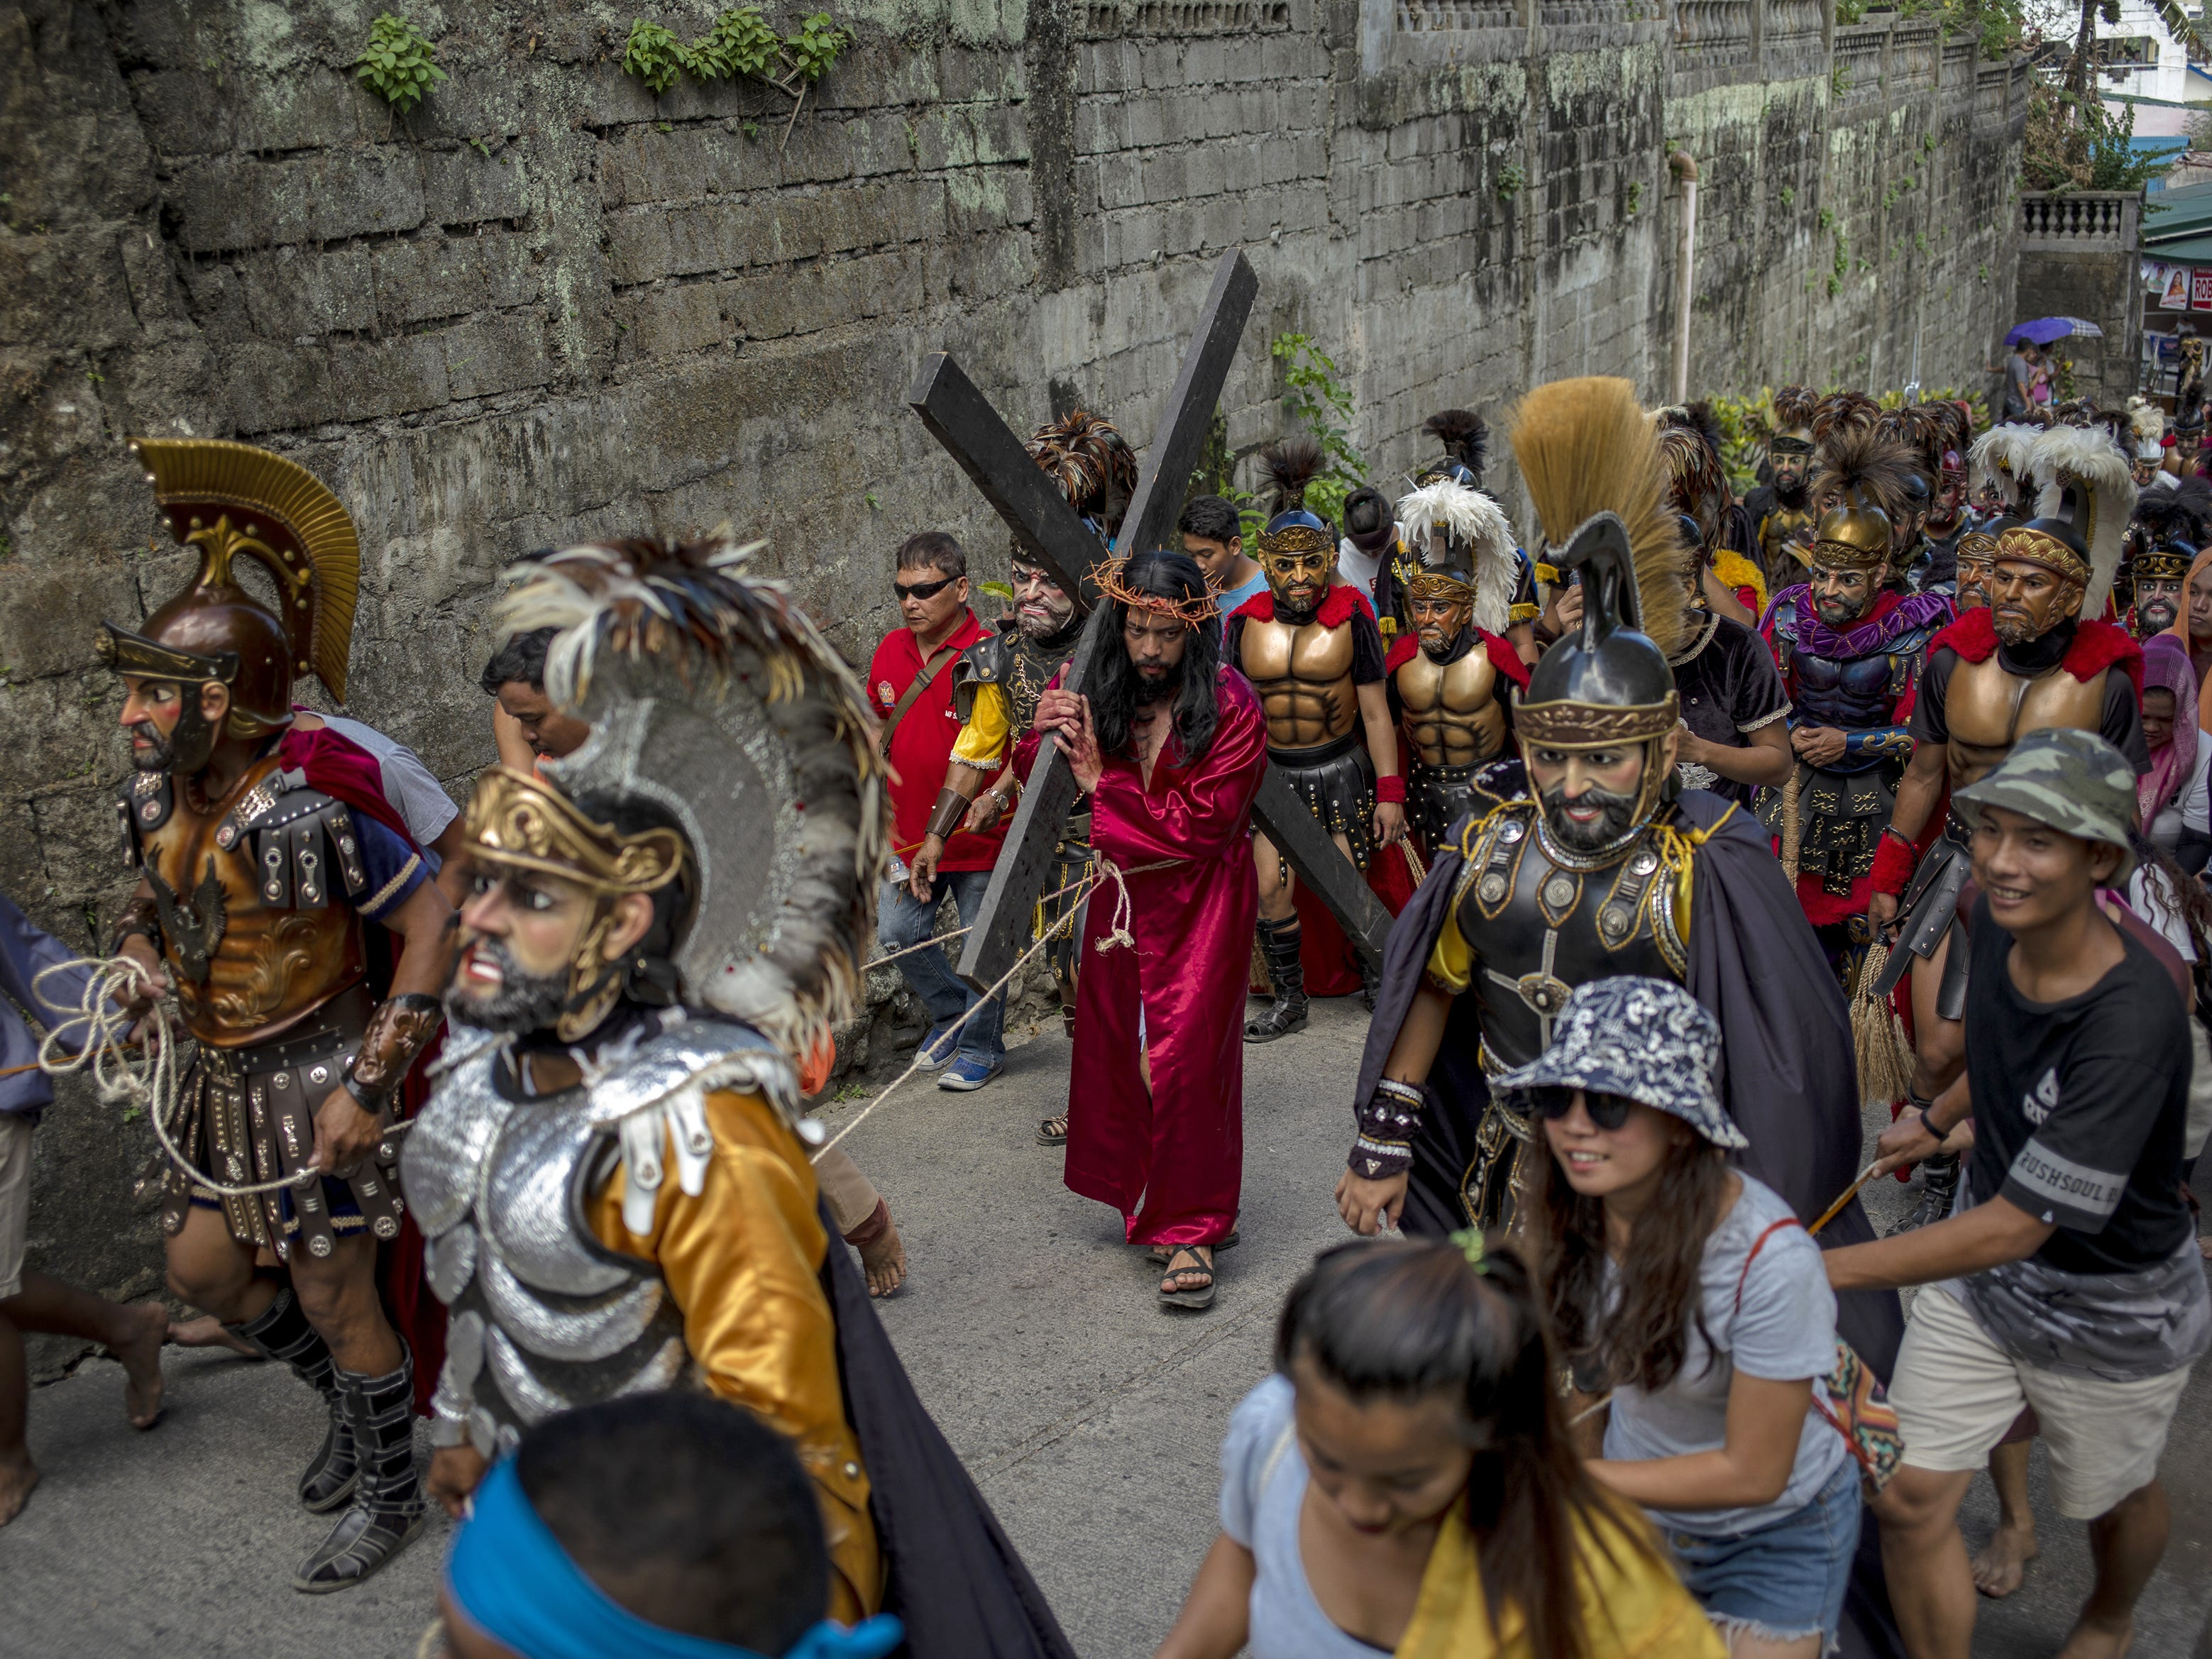 Residents perform the Passion of the Christ on April 19, 2019 in Boac, Marinduque in the Philippines. The Philippines, a predominantly Catholic country in Southeast Asia, join other Catholic nations in observance of holy week.